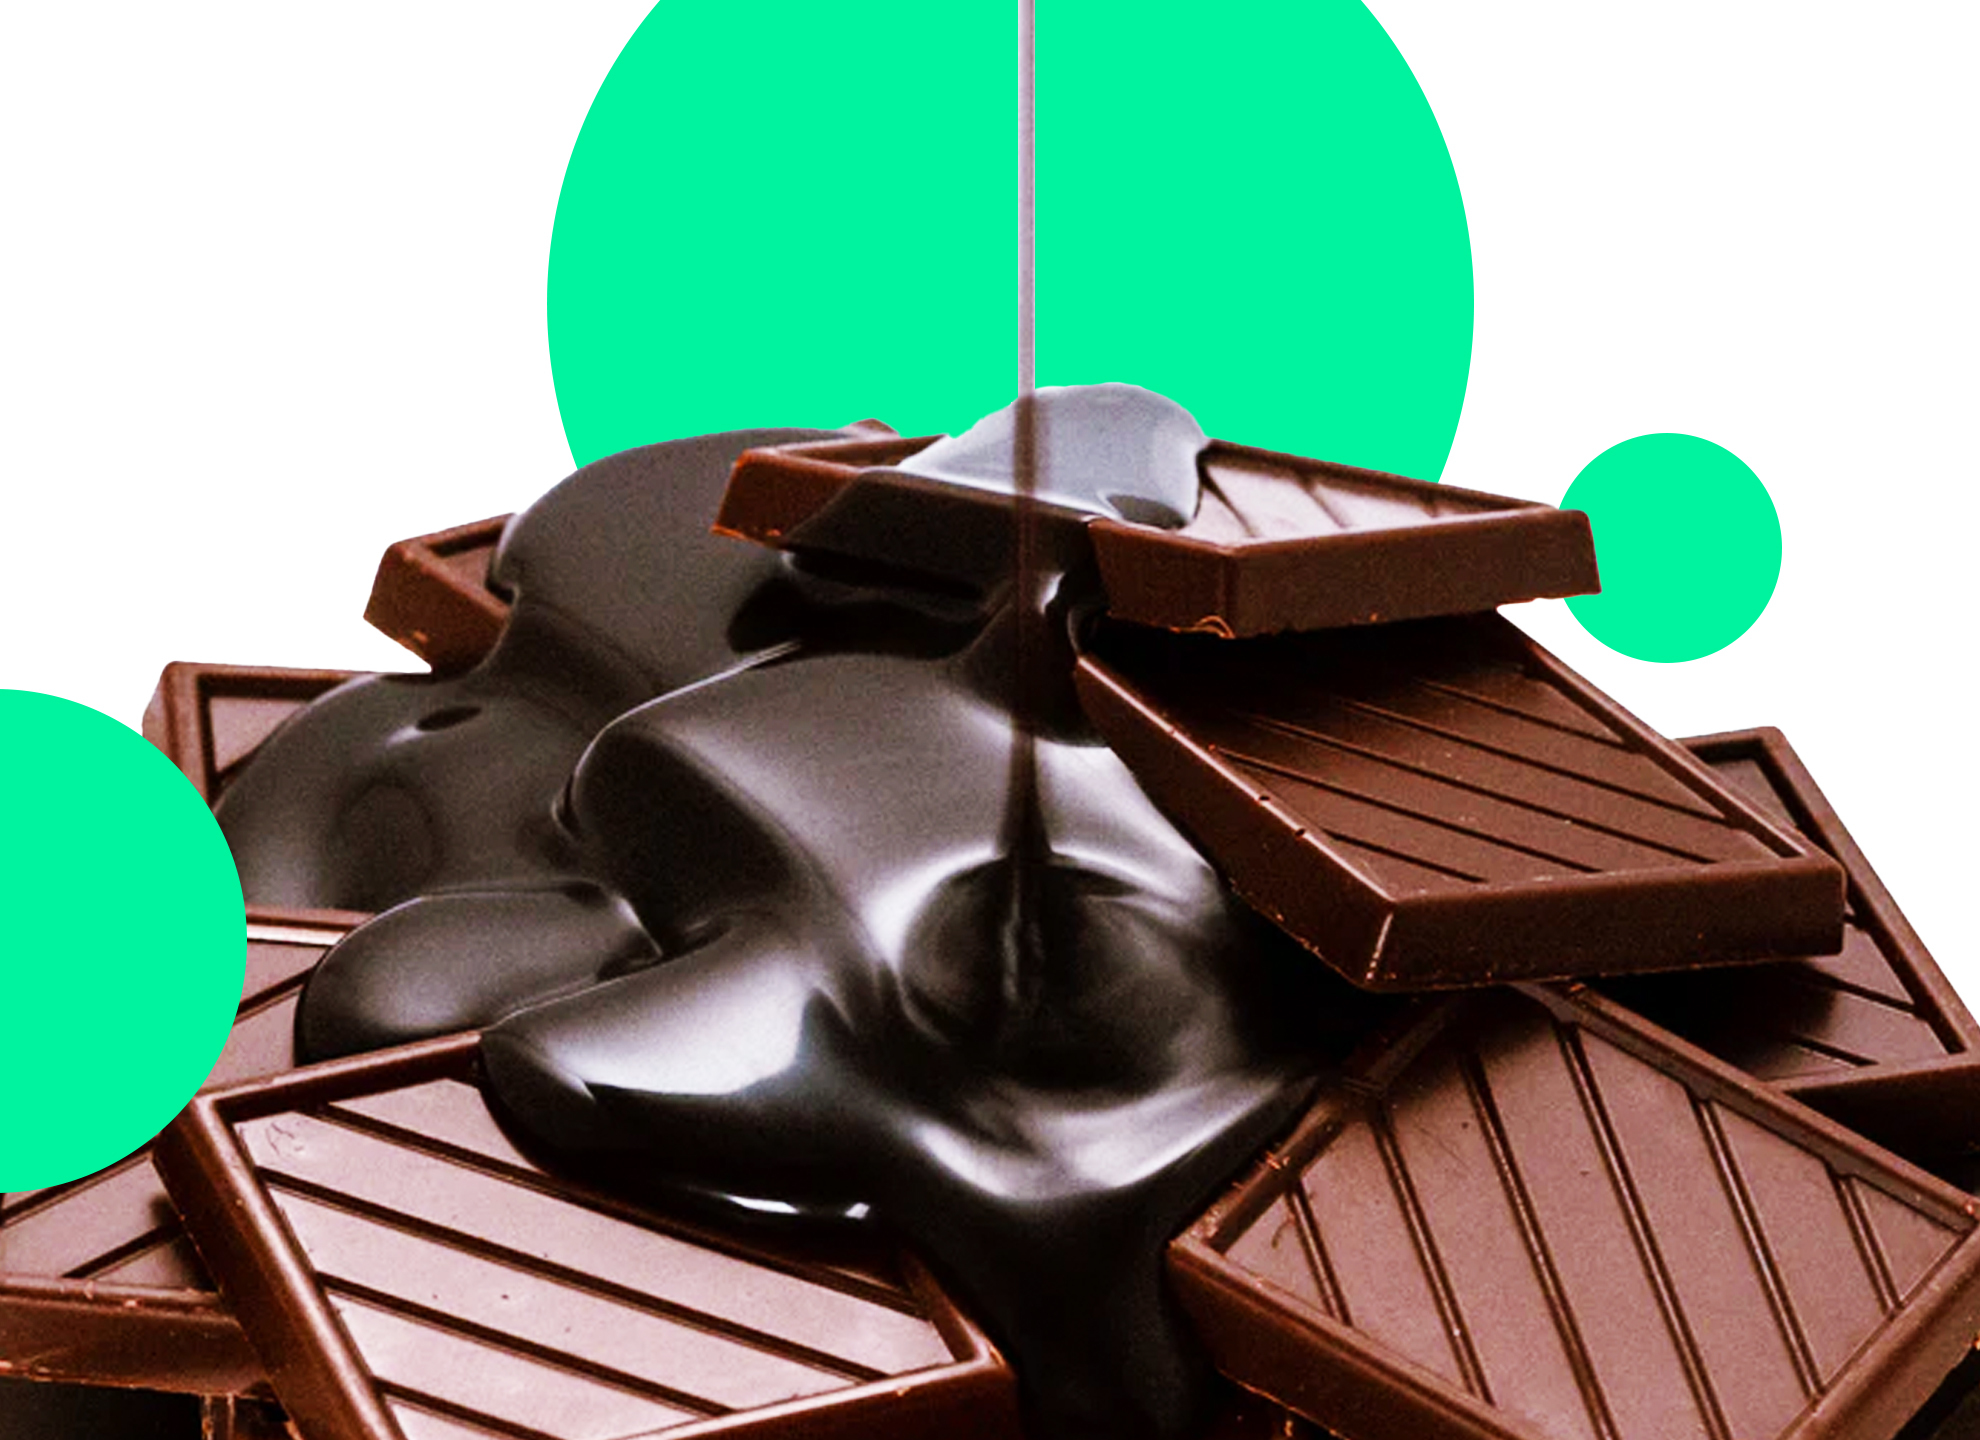 Pile of chocolate successful brands on World Chocolate Day